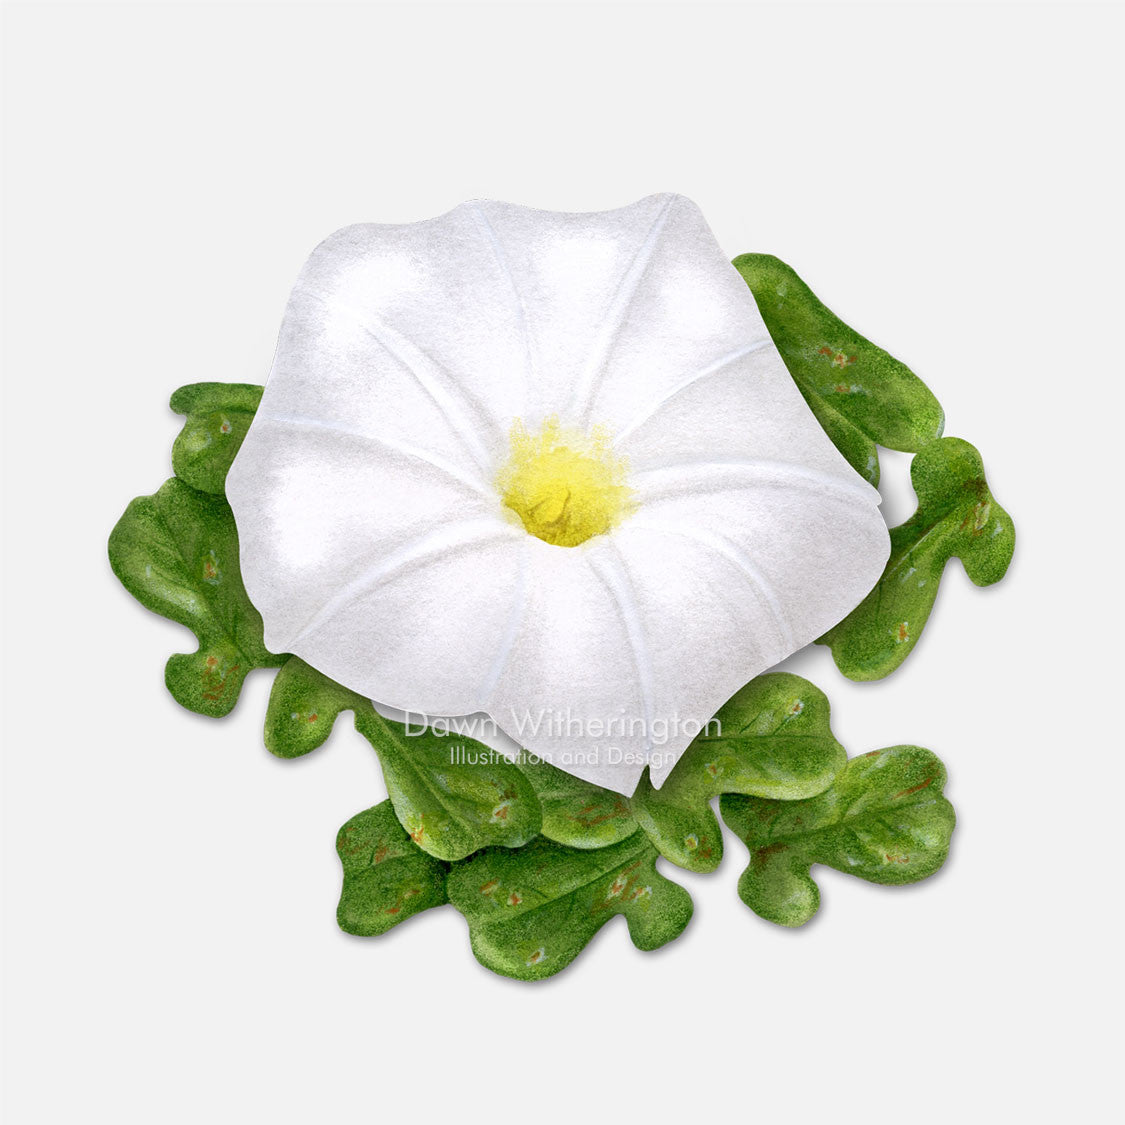 This beautiful illustration of beach morning-glory (Ipomoea imperati), is botanically accurate in detail.